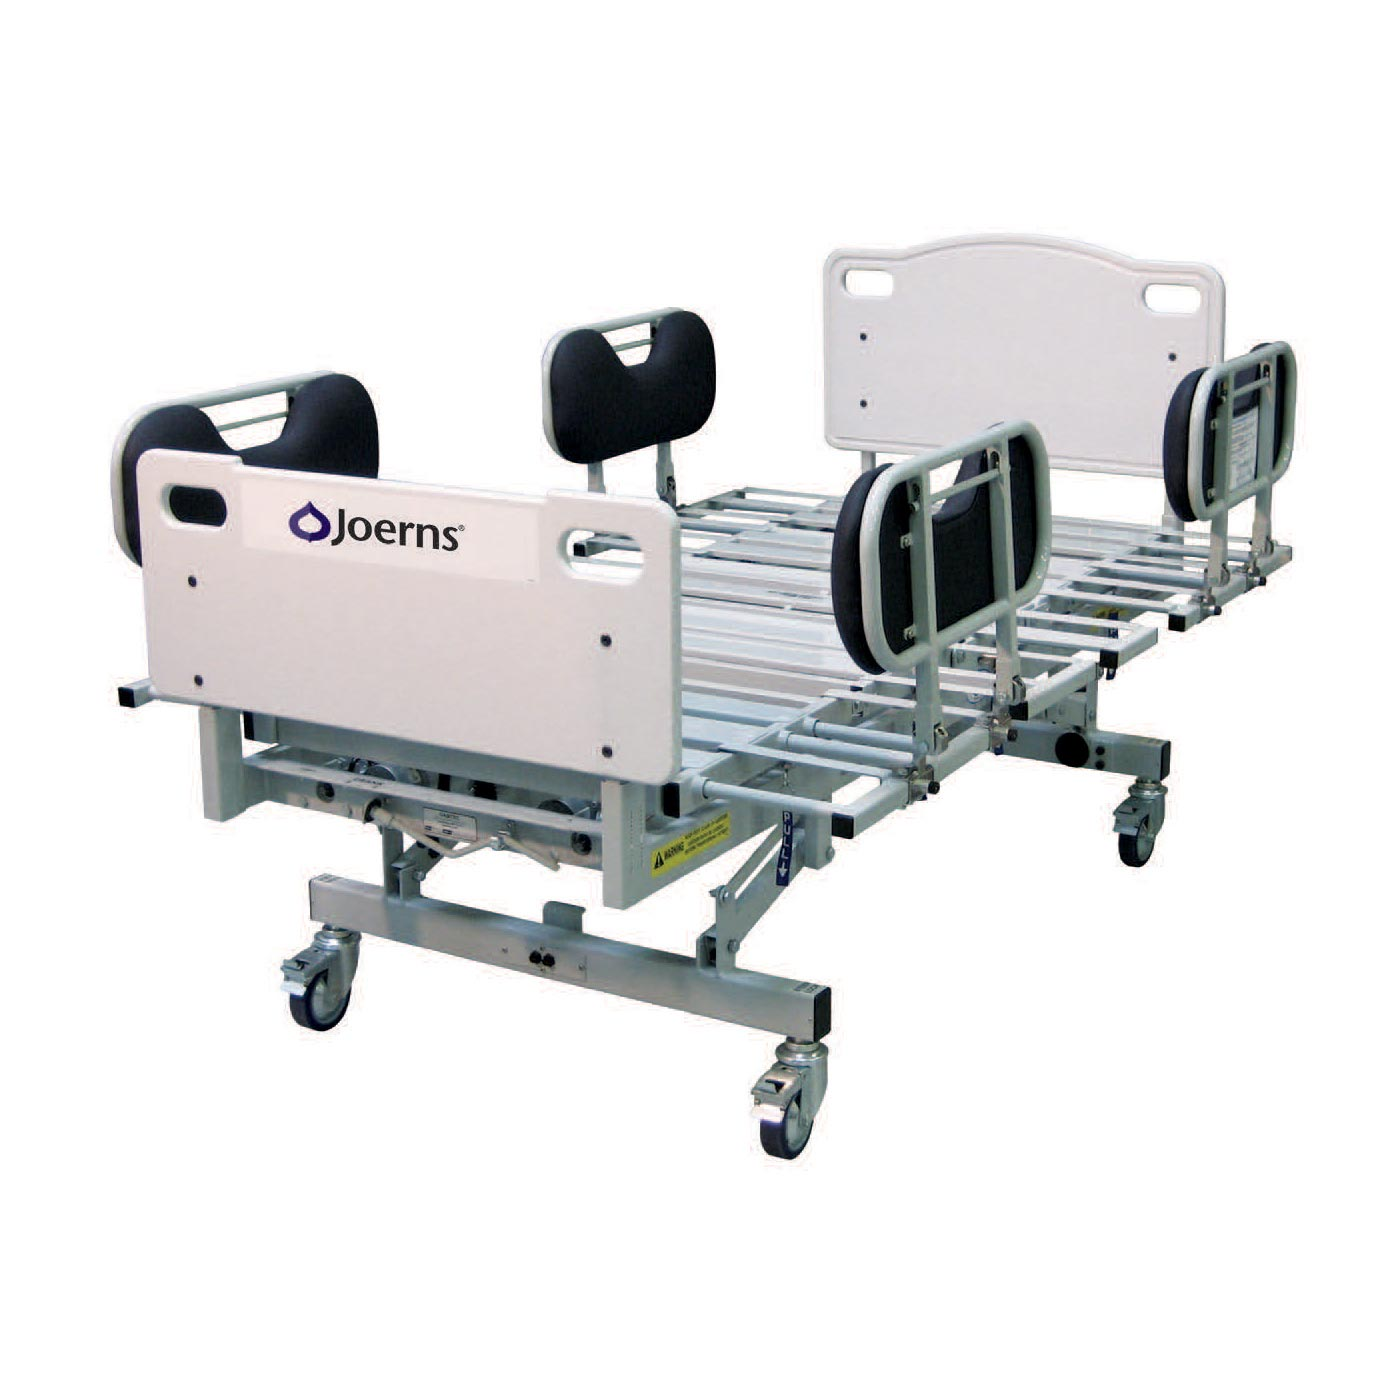 Joerns RC750 Bariatric Healthcare Bed